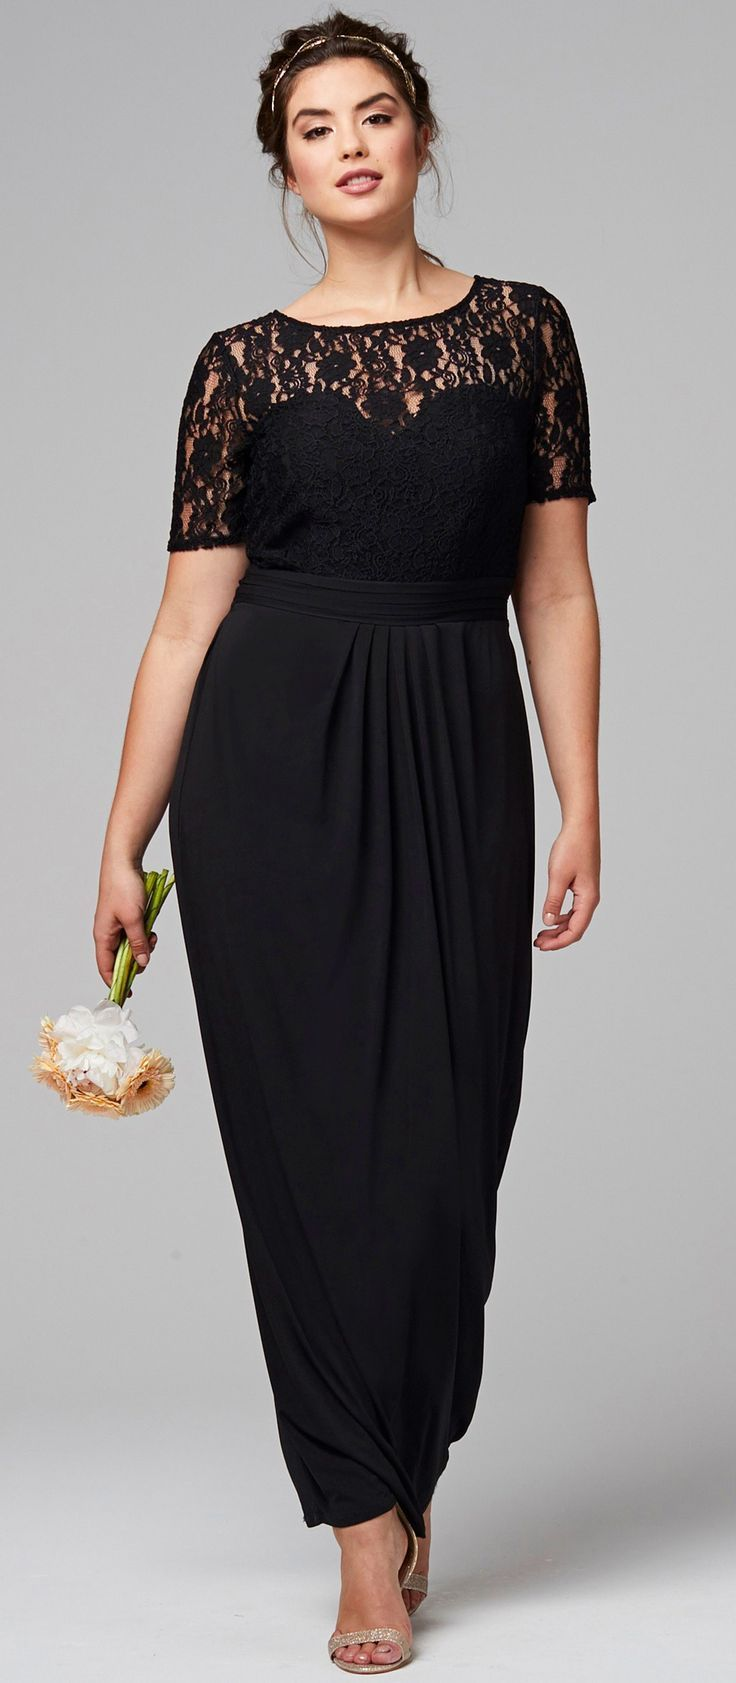 Clearance Plus Size Clothing Wedding Guest